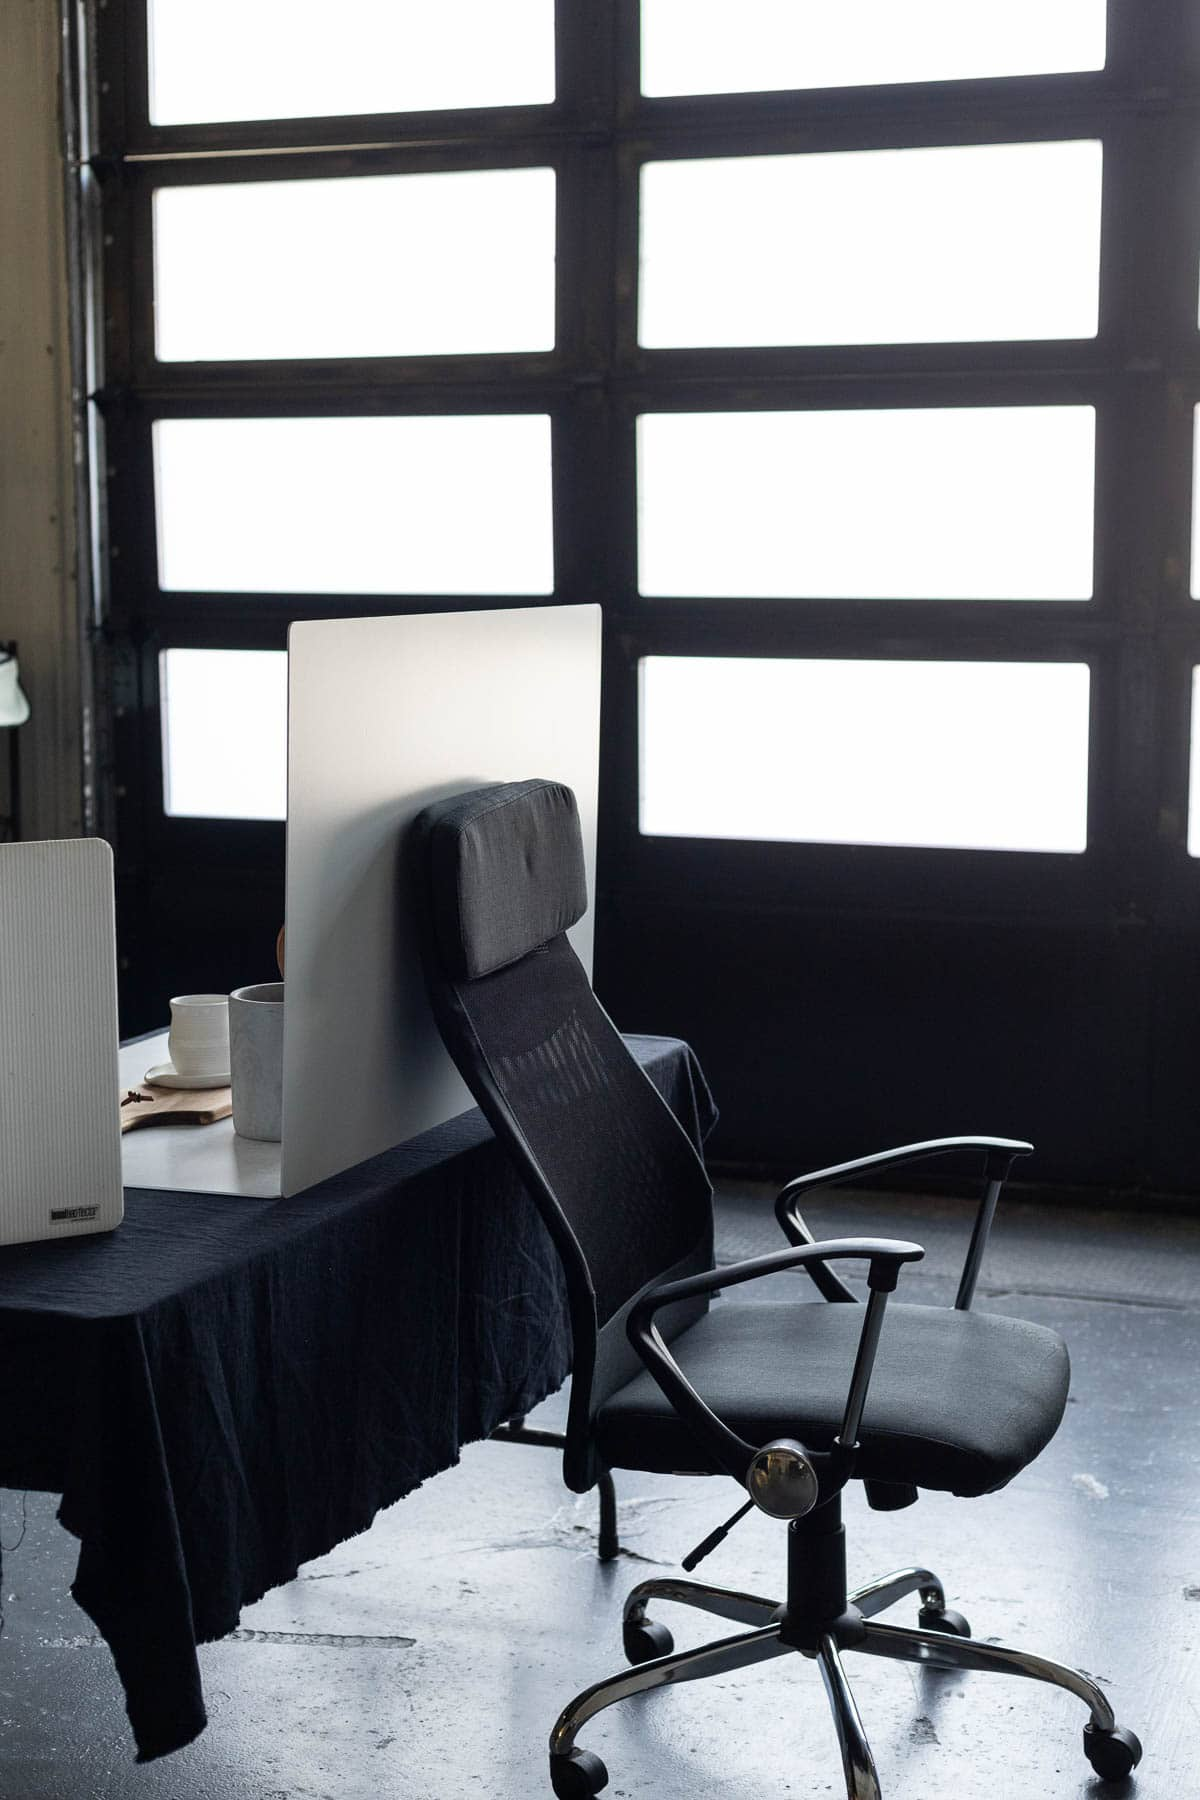 An office chair holding up a photography backdrop